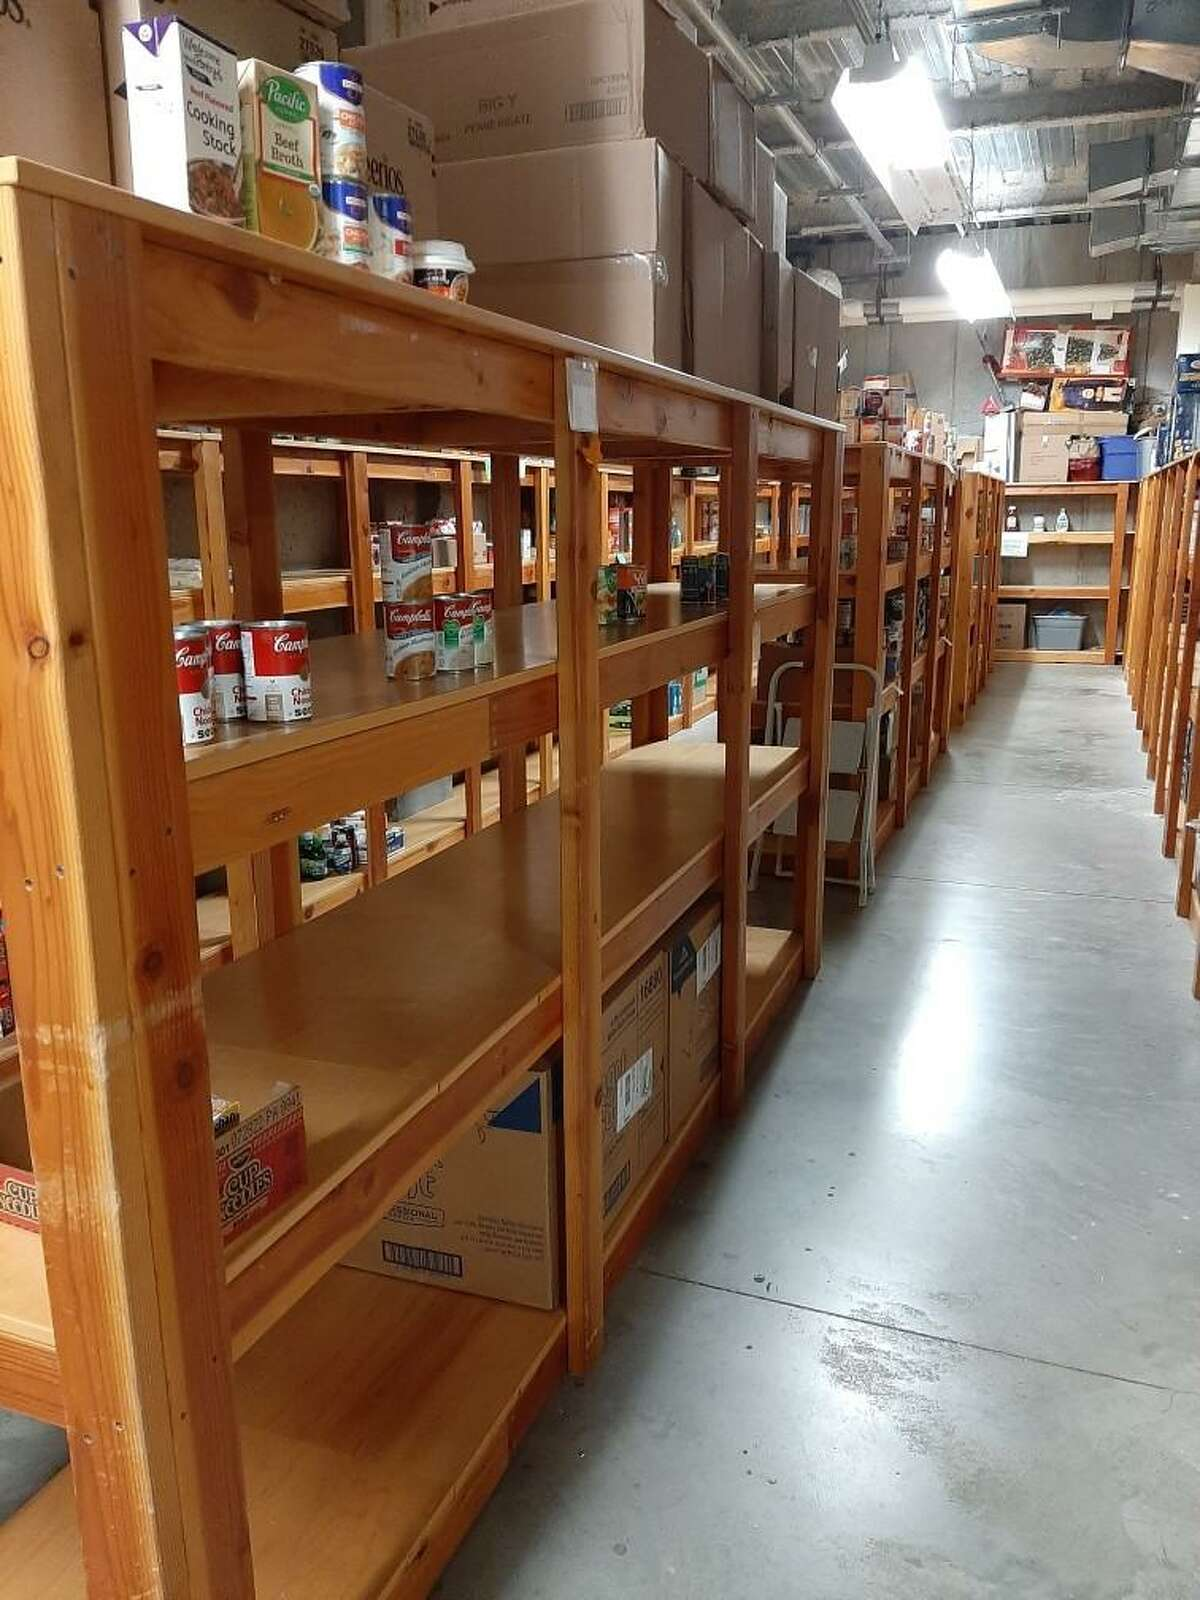 Spooner House officials are calling on the community for donations to help restock the shelves at the Valley Food Bank.